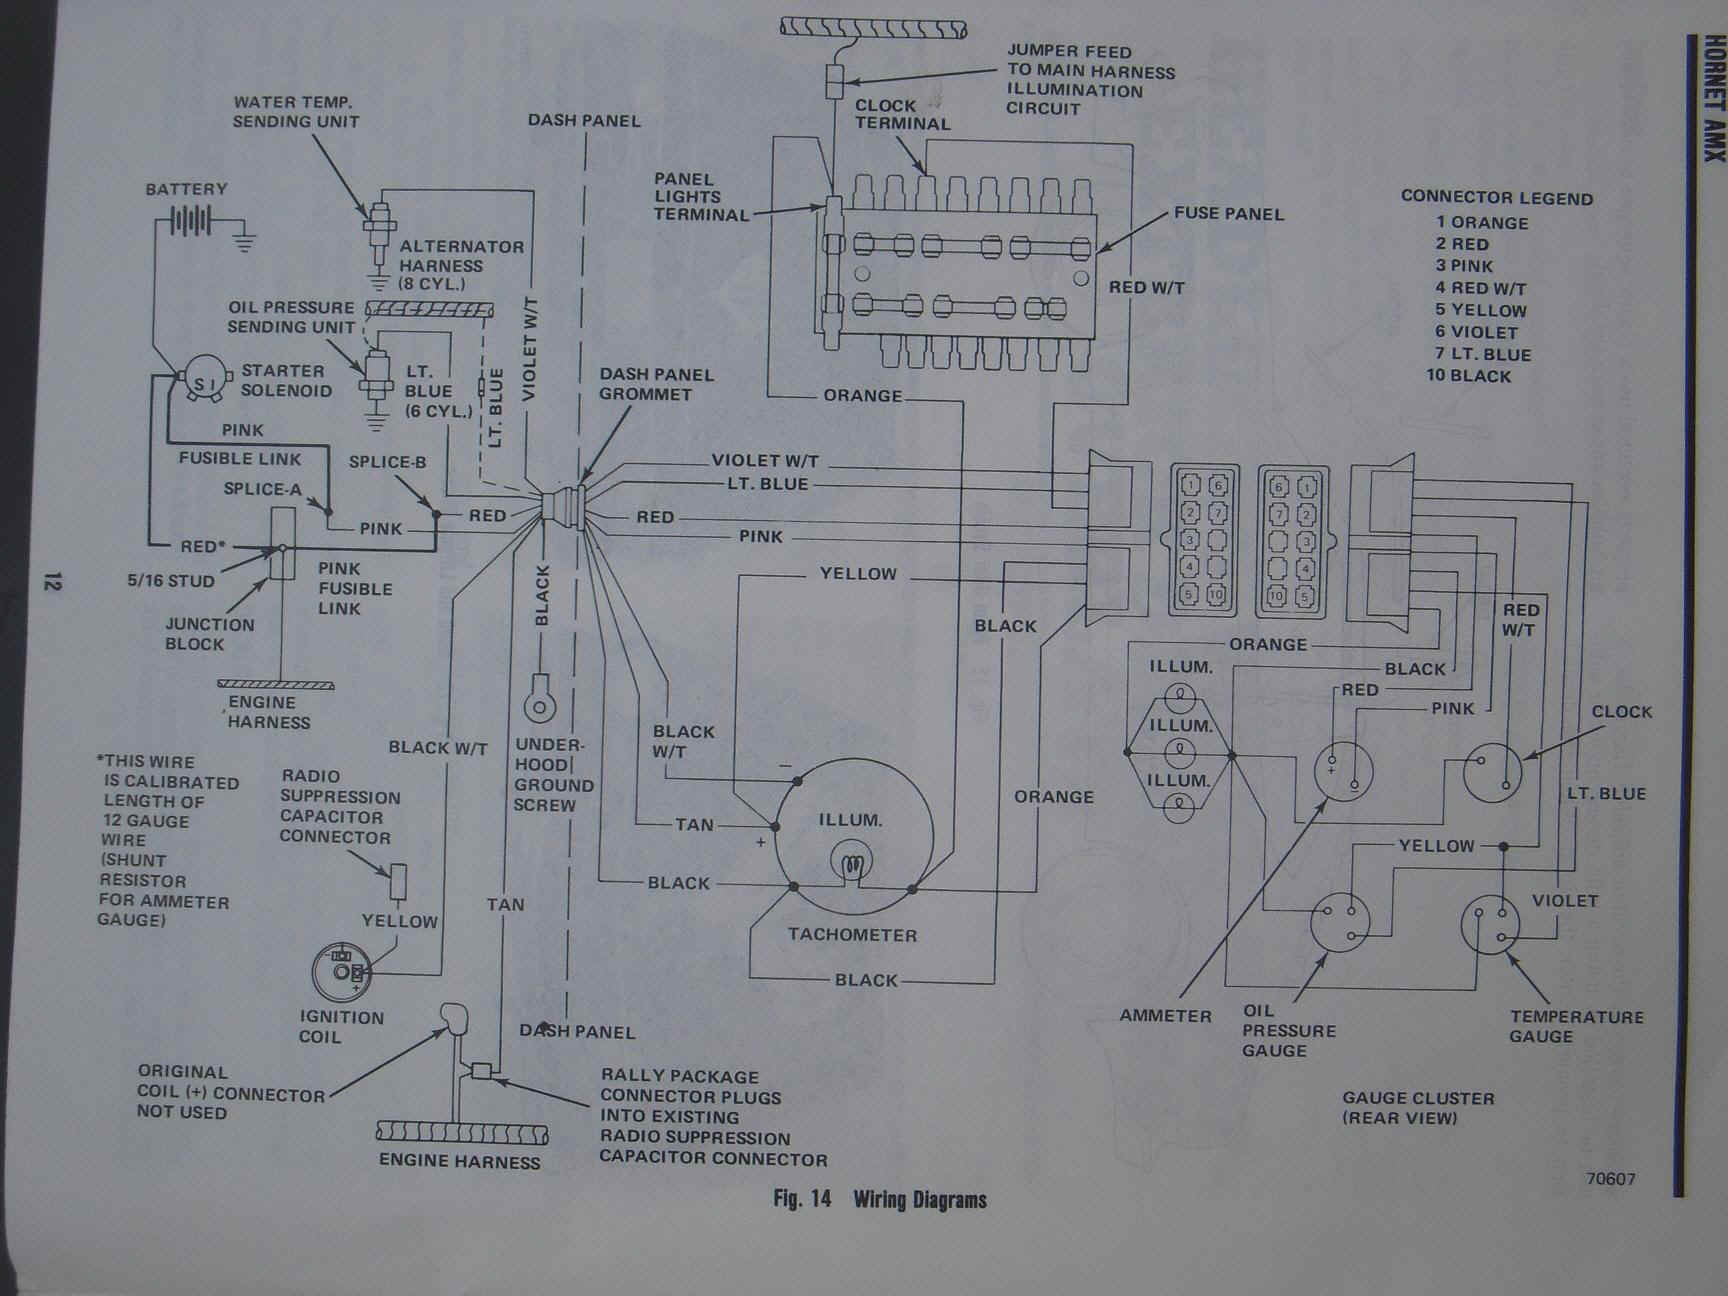 Hornet Wire Diagram Wiring Schematics Avital 4111 1977 Amc Auto Electrical Origami Dinosaurs With Teeth